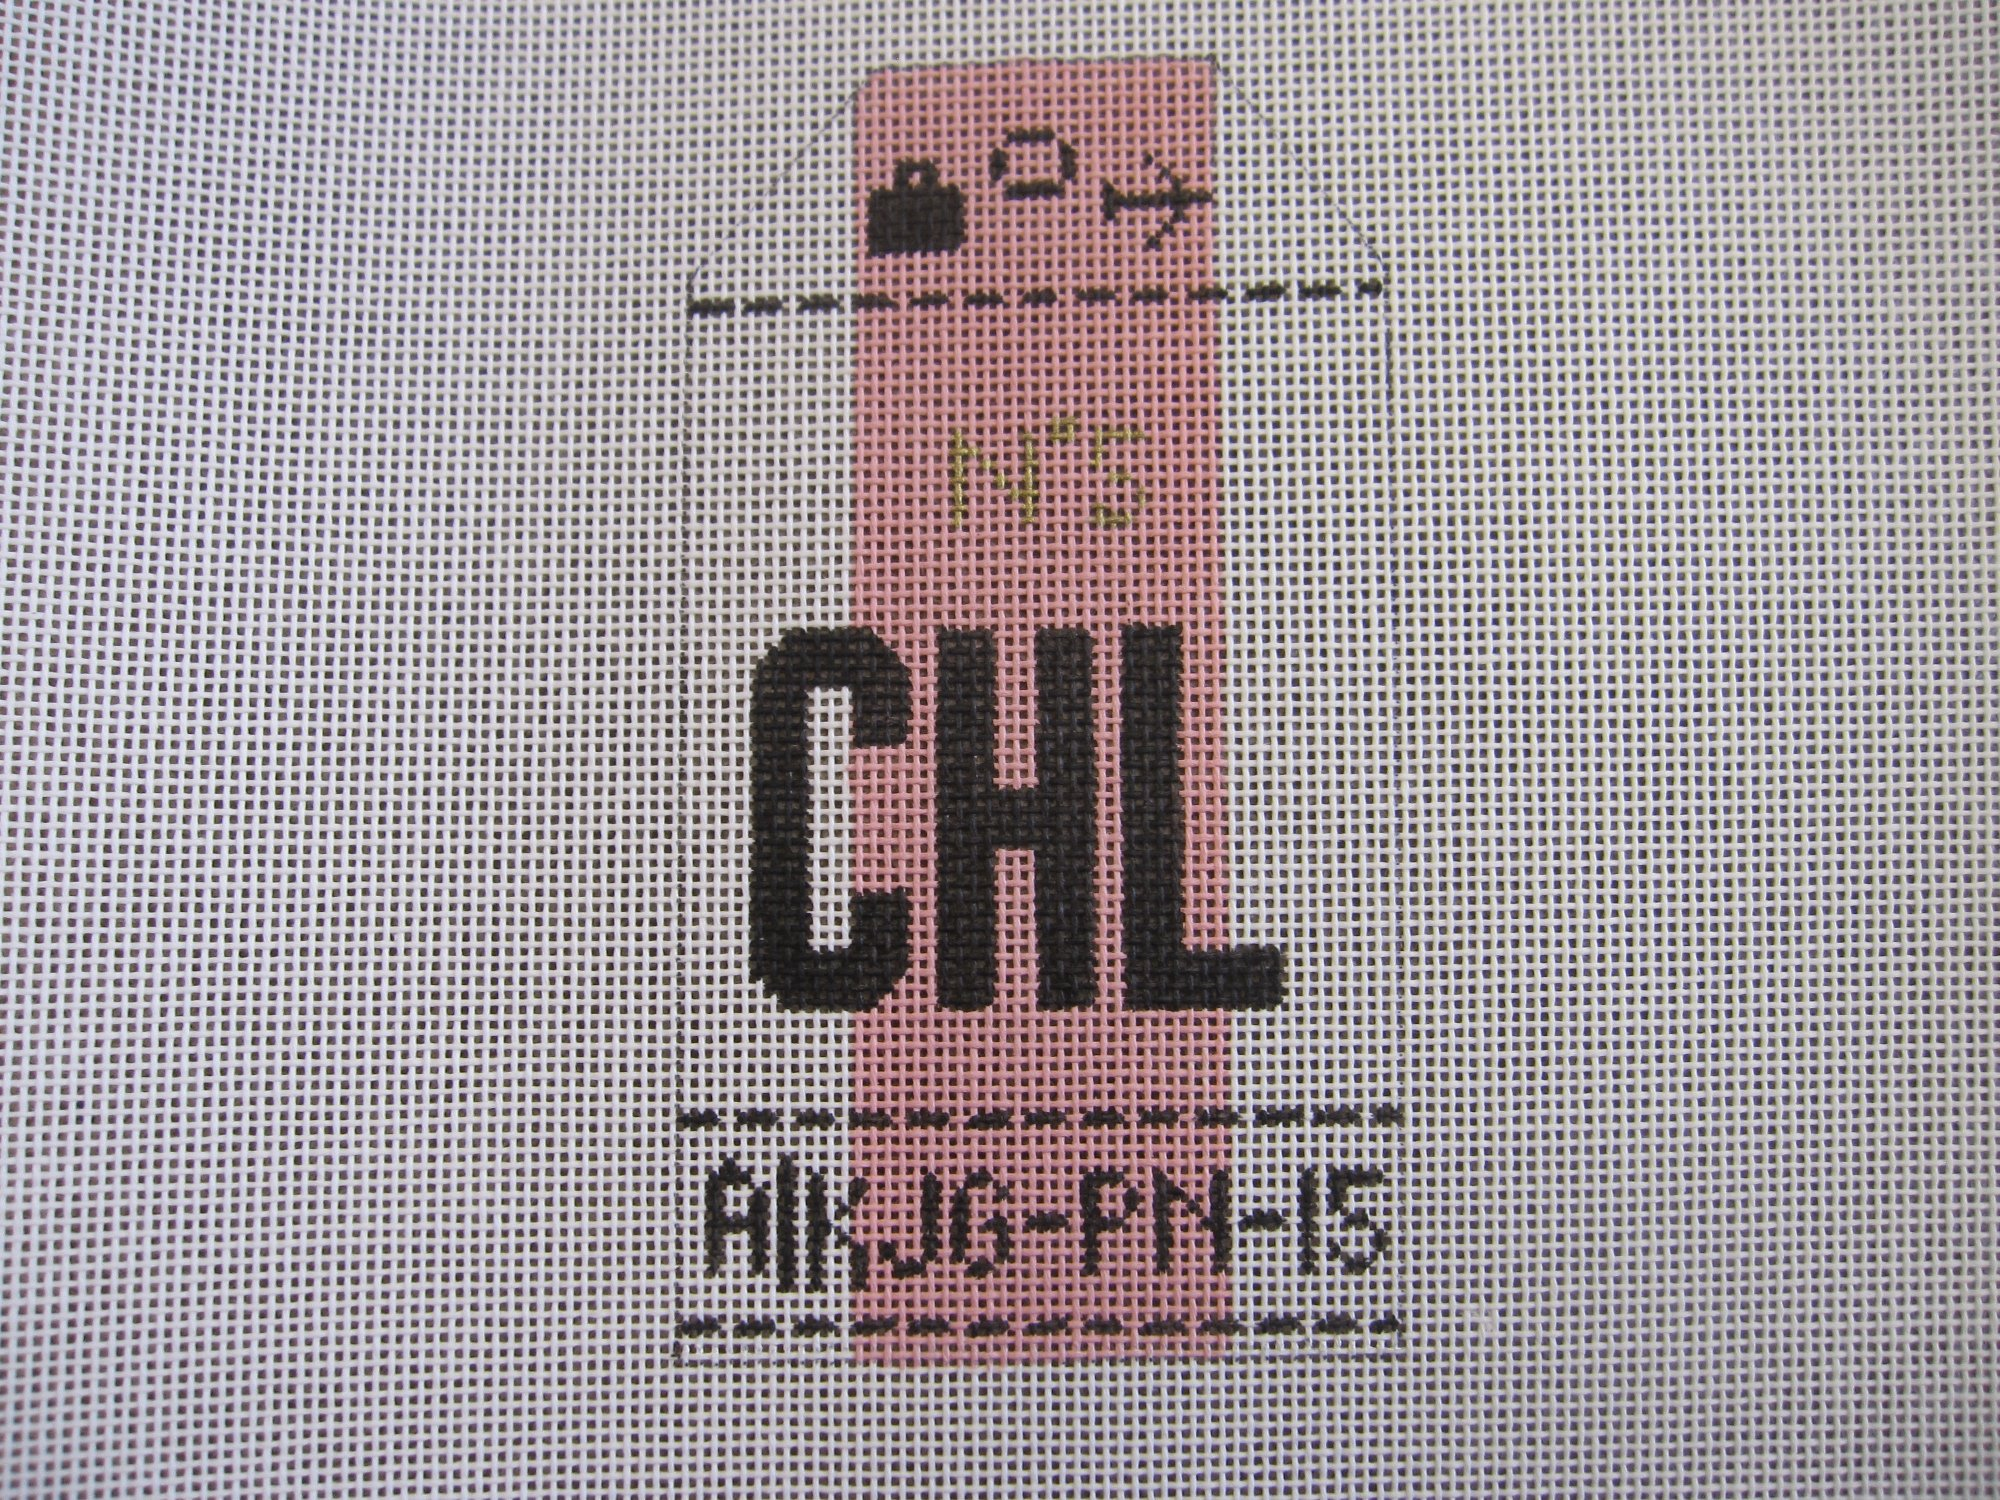 Airport Luggage Tag - Chanel